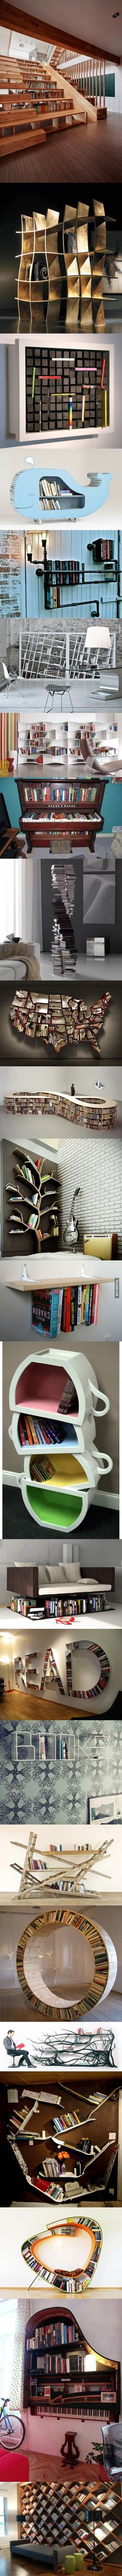 24 Sexy Bookshelves For Your Literature To Make Love To